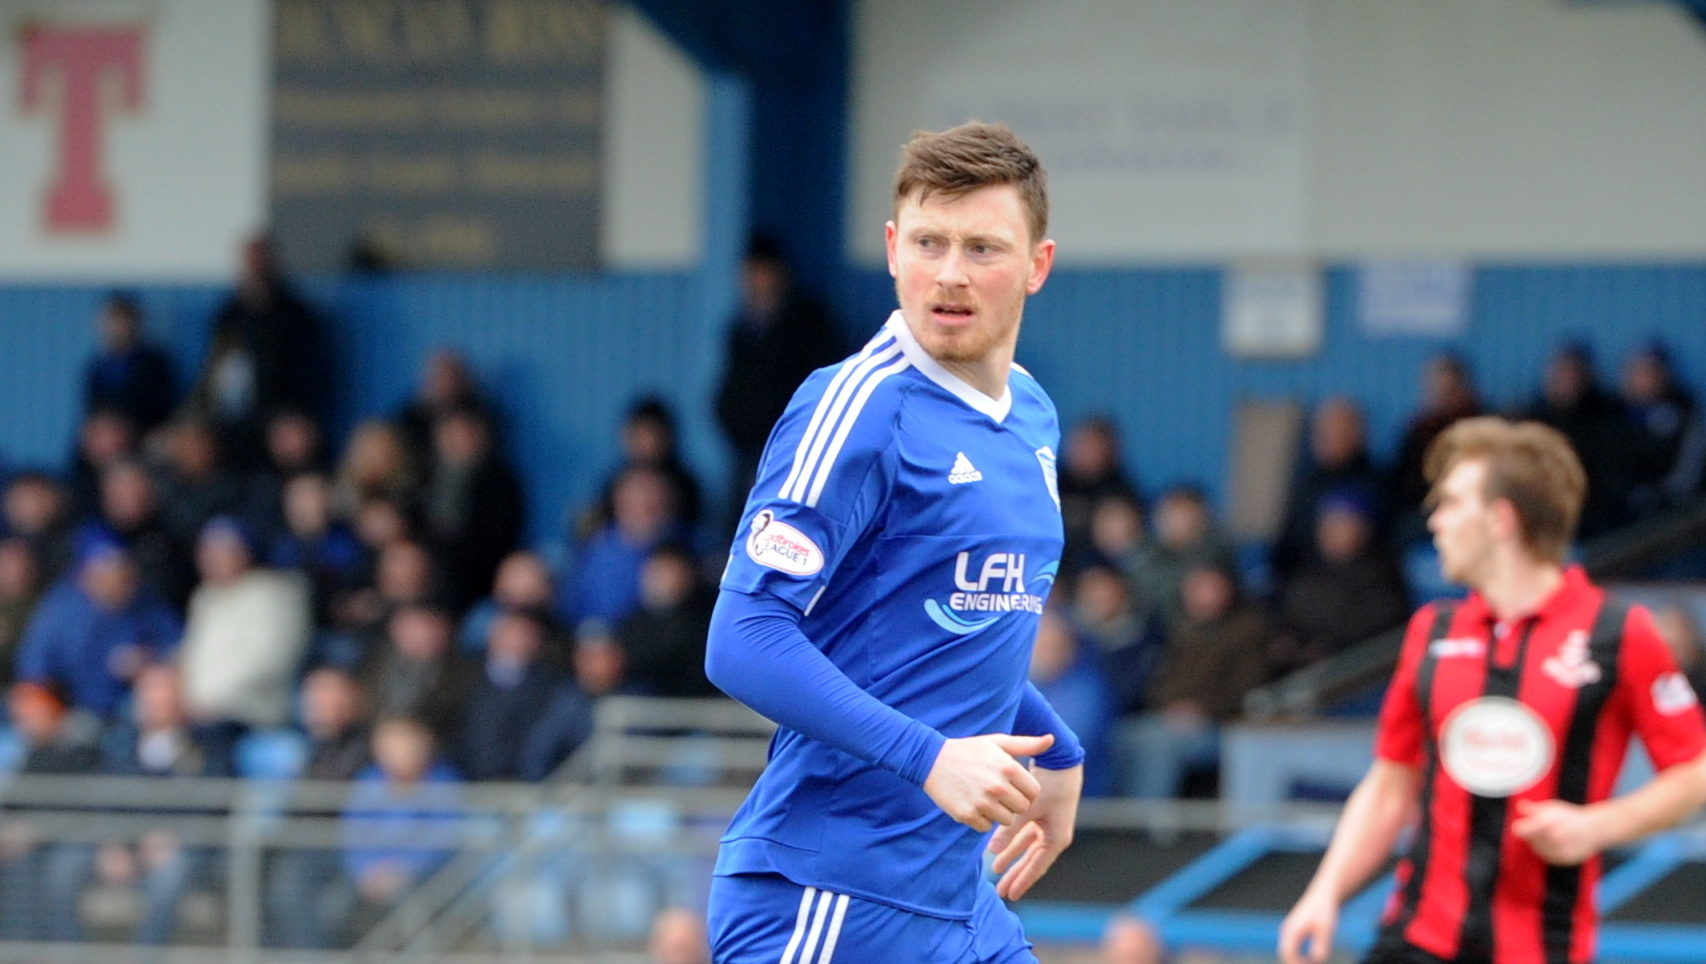 Shane Sutherland has been transfer-listed by Peterhead.